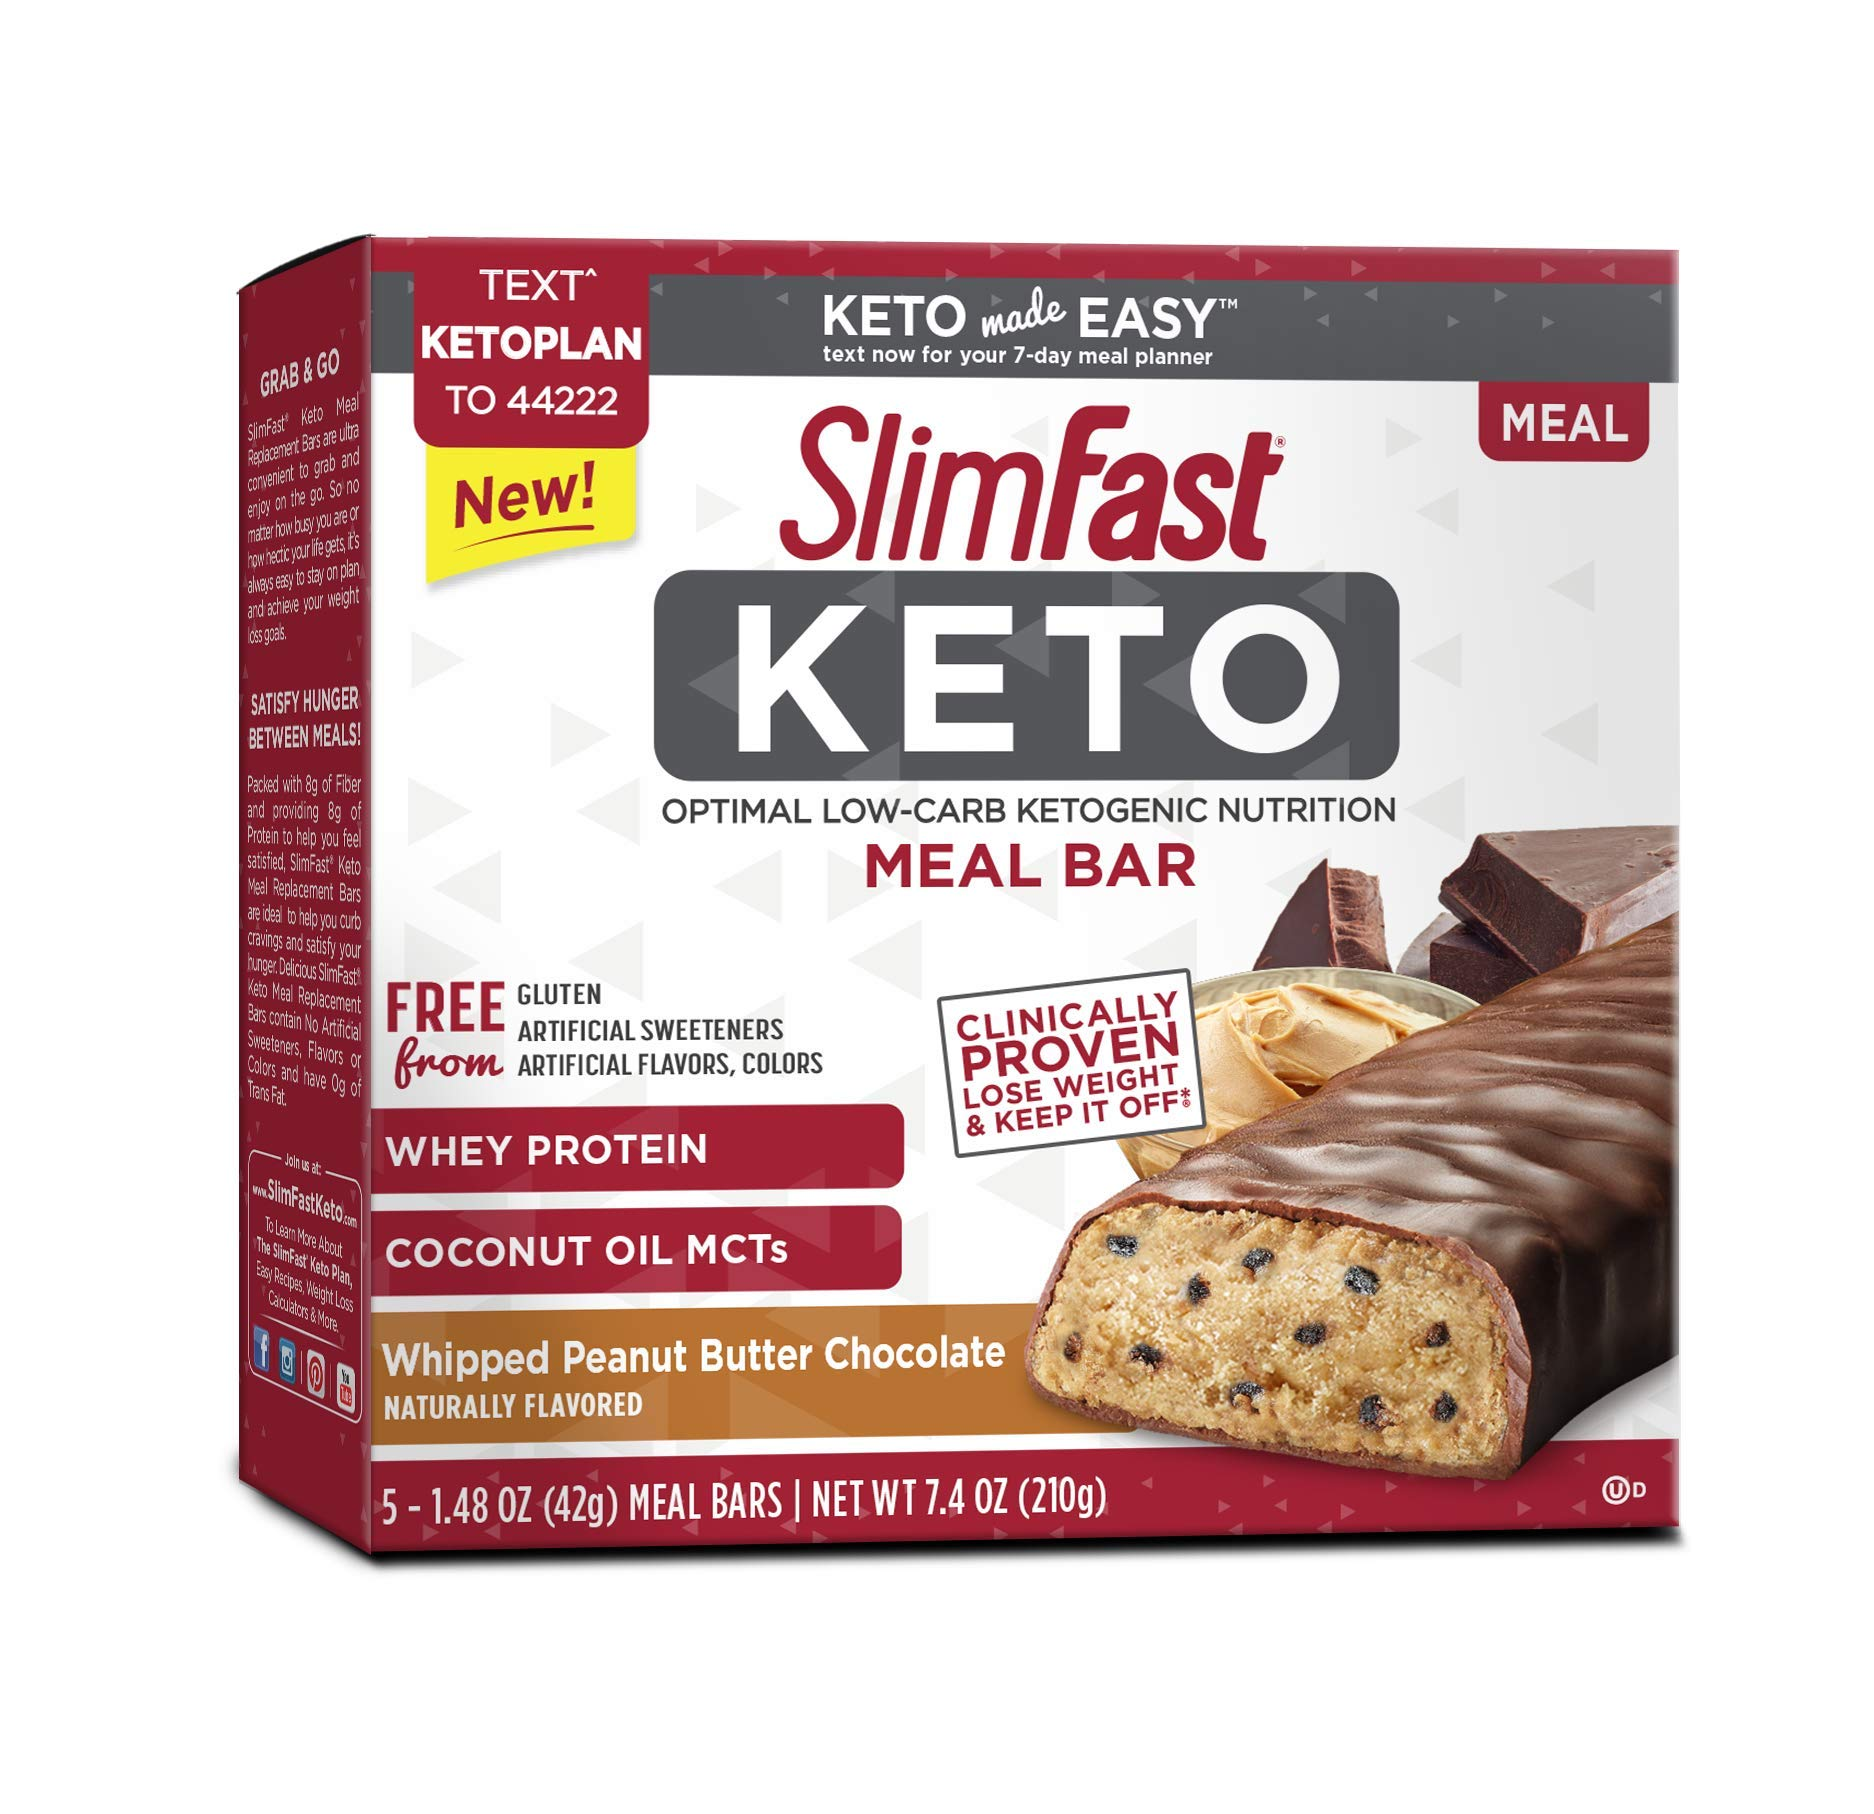 SlimFast Keto Meal Replacement Whipped Peanut Butter Chocolate Bar 1.48 oz 5 Bars per Box (4 Boxes)